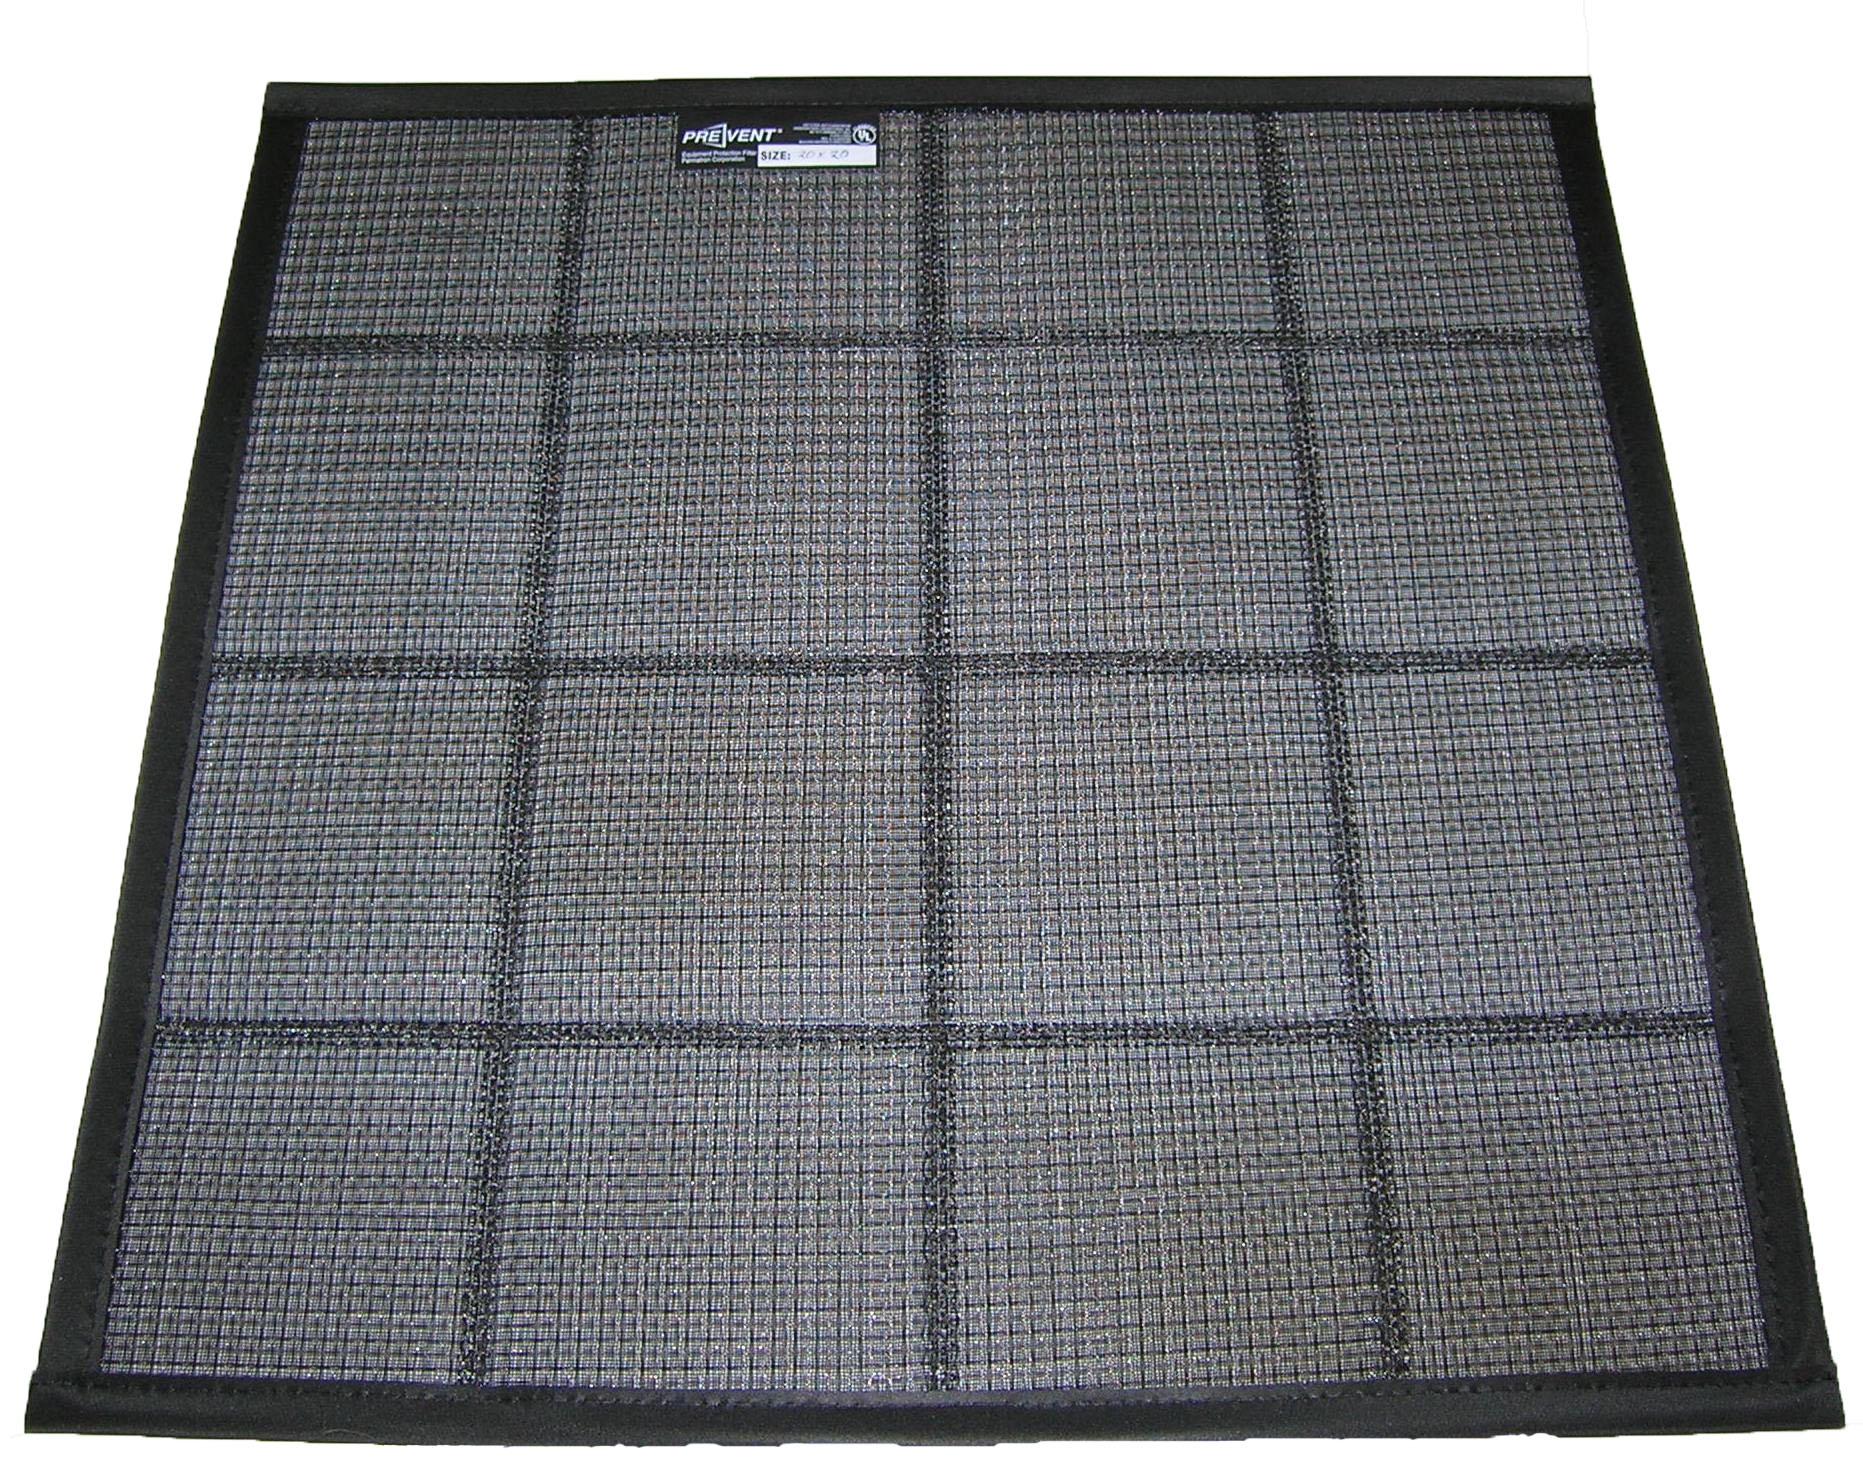 oem-vinyl-edge-sonic-seal-grid